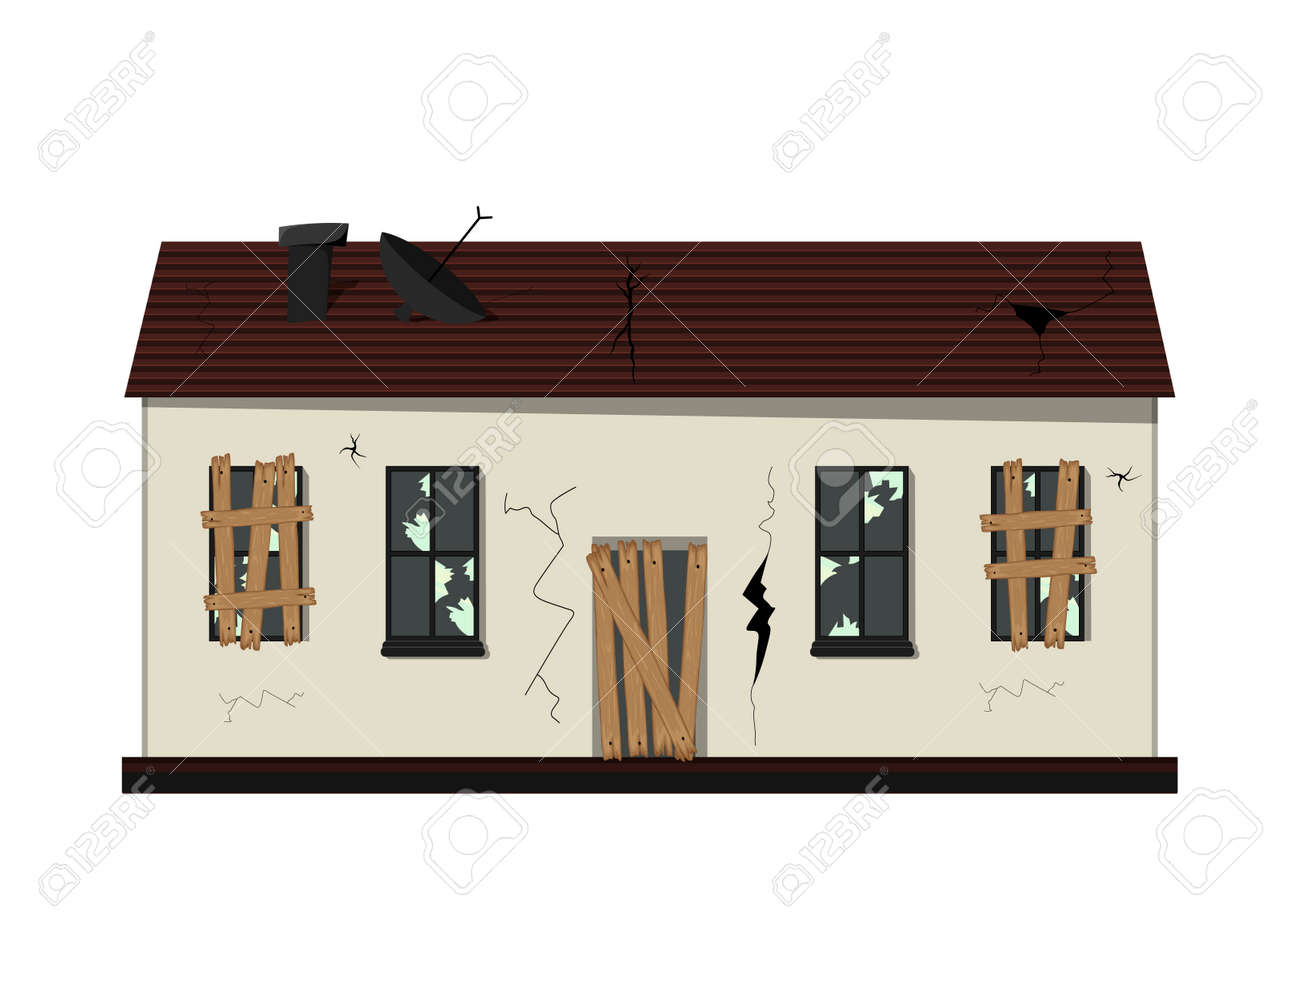 One-story old dilapidated house before renovation. Cartoon style. Vector illustration - 160182212